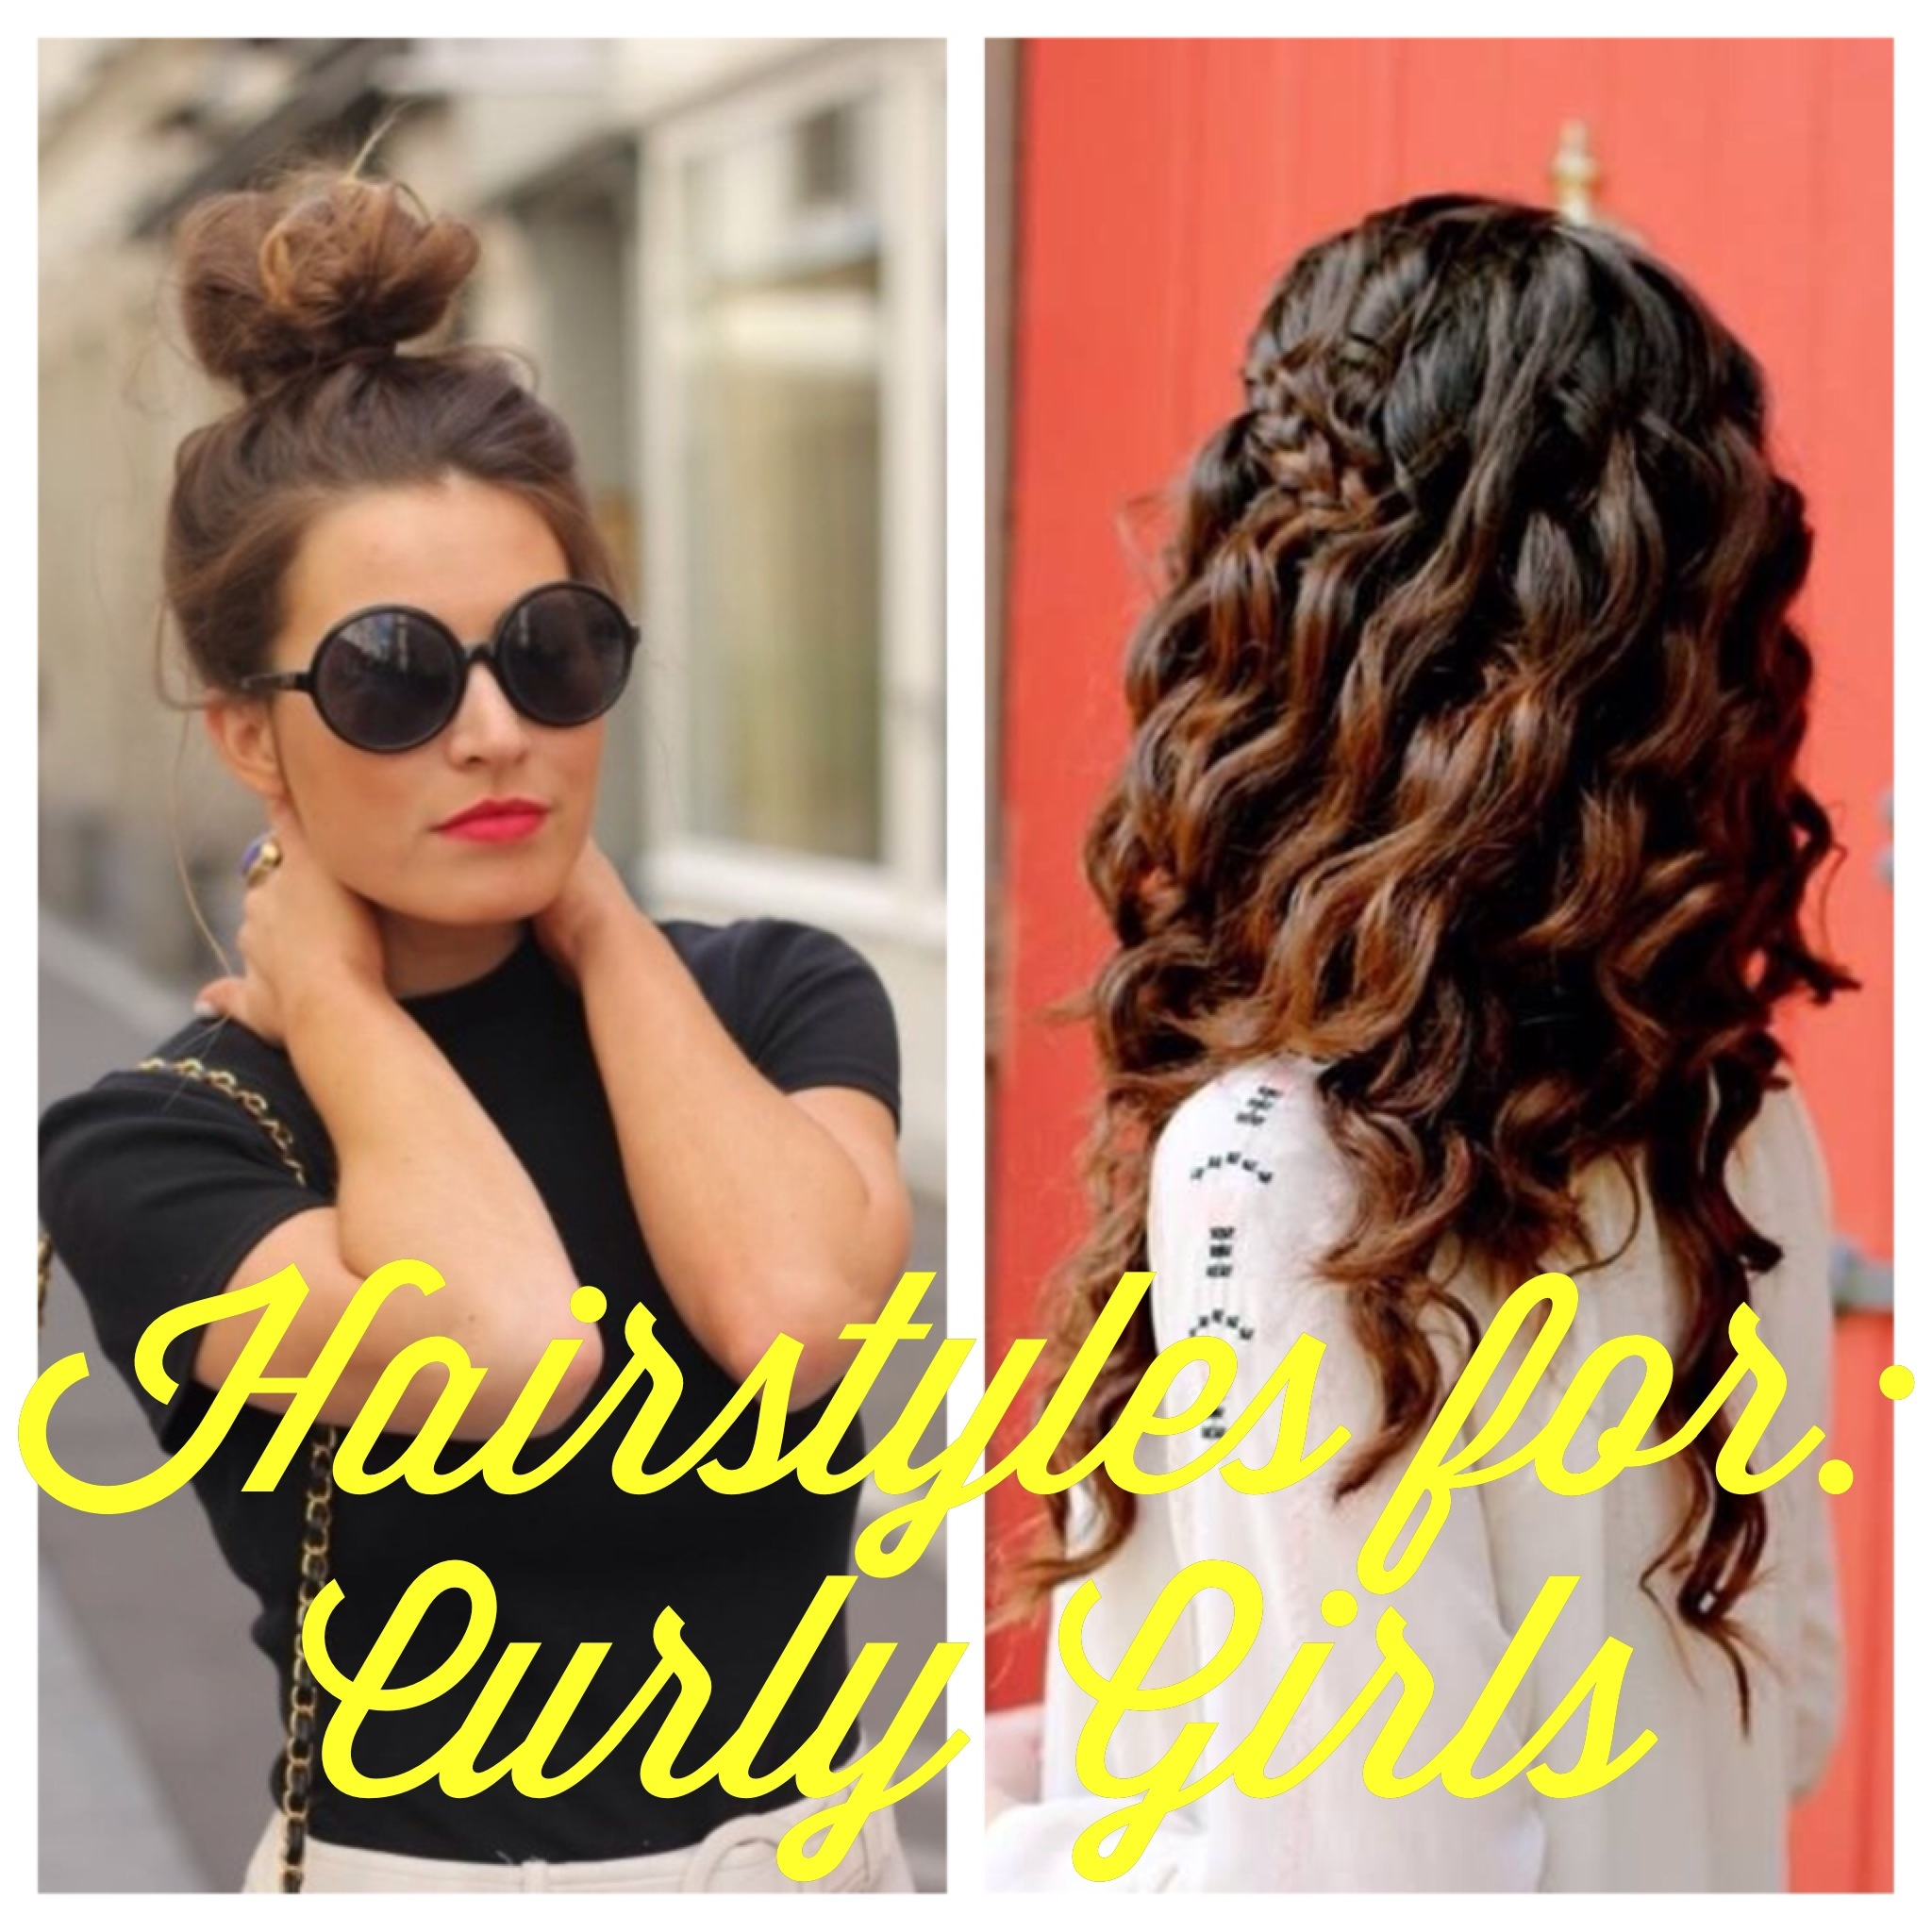 Outstanding Curly Hair Classy Girl With Curls Hairstyles For Men Maxibearus